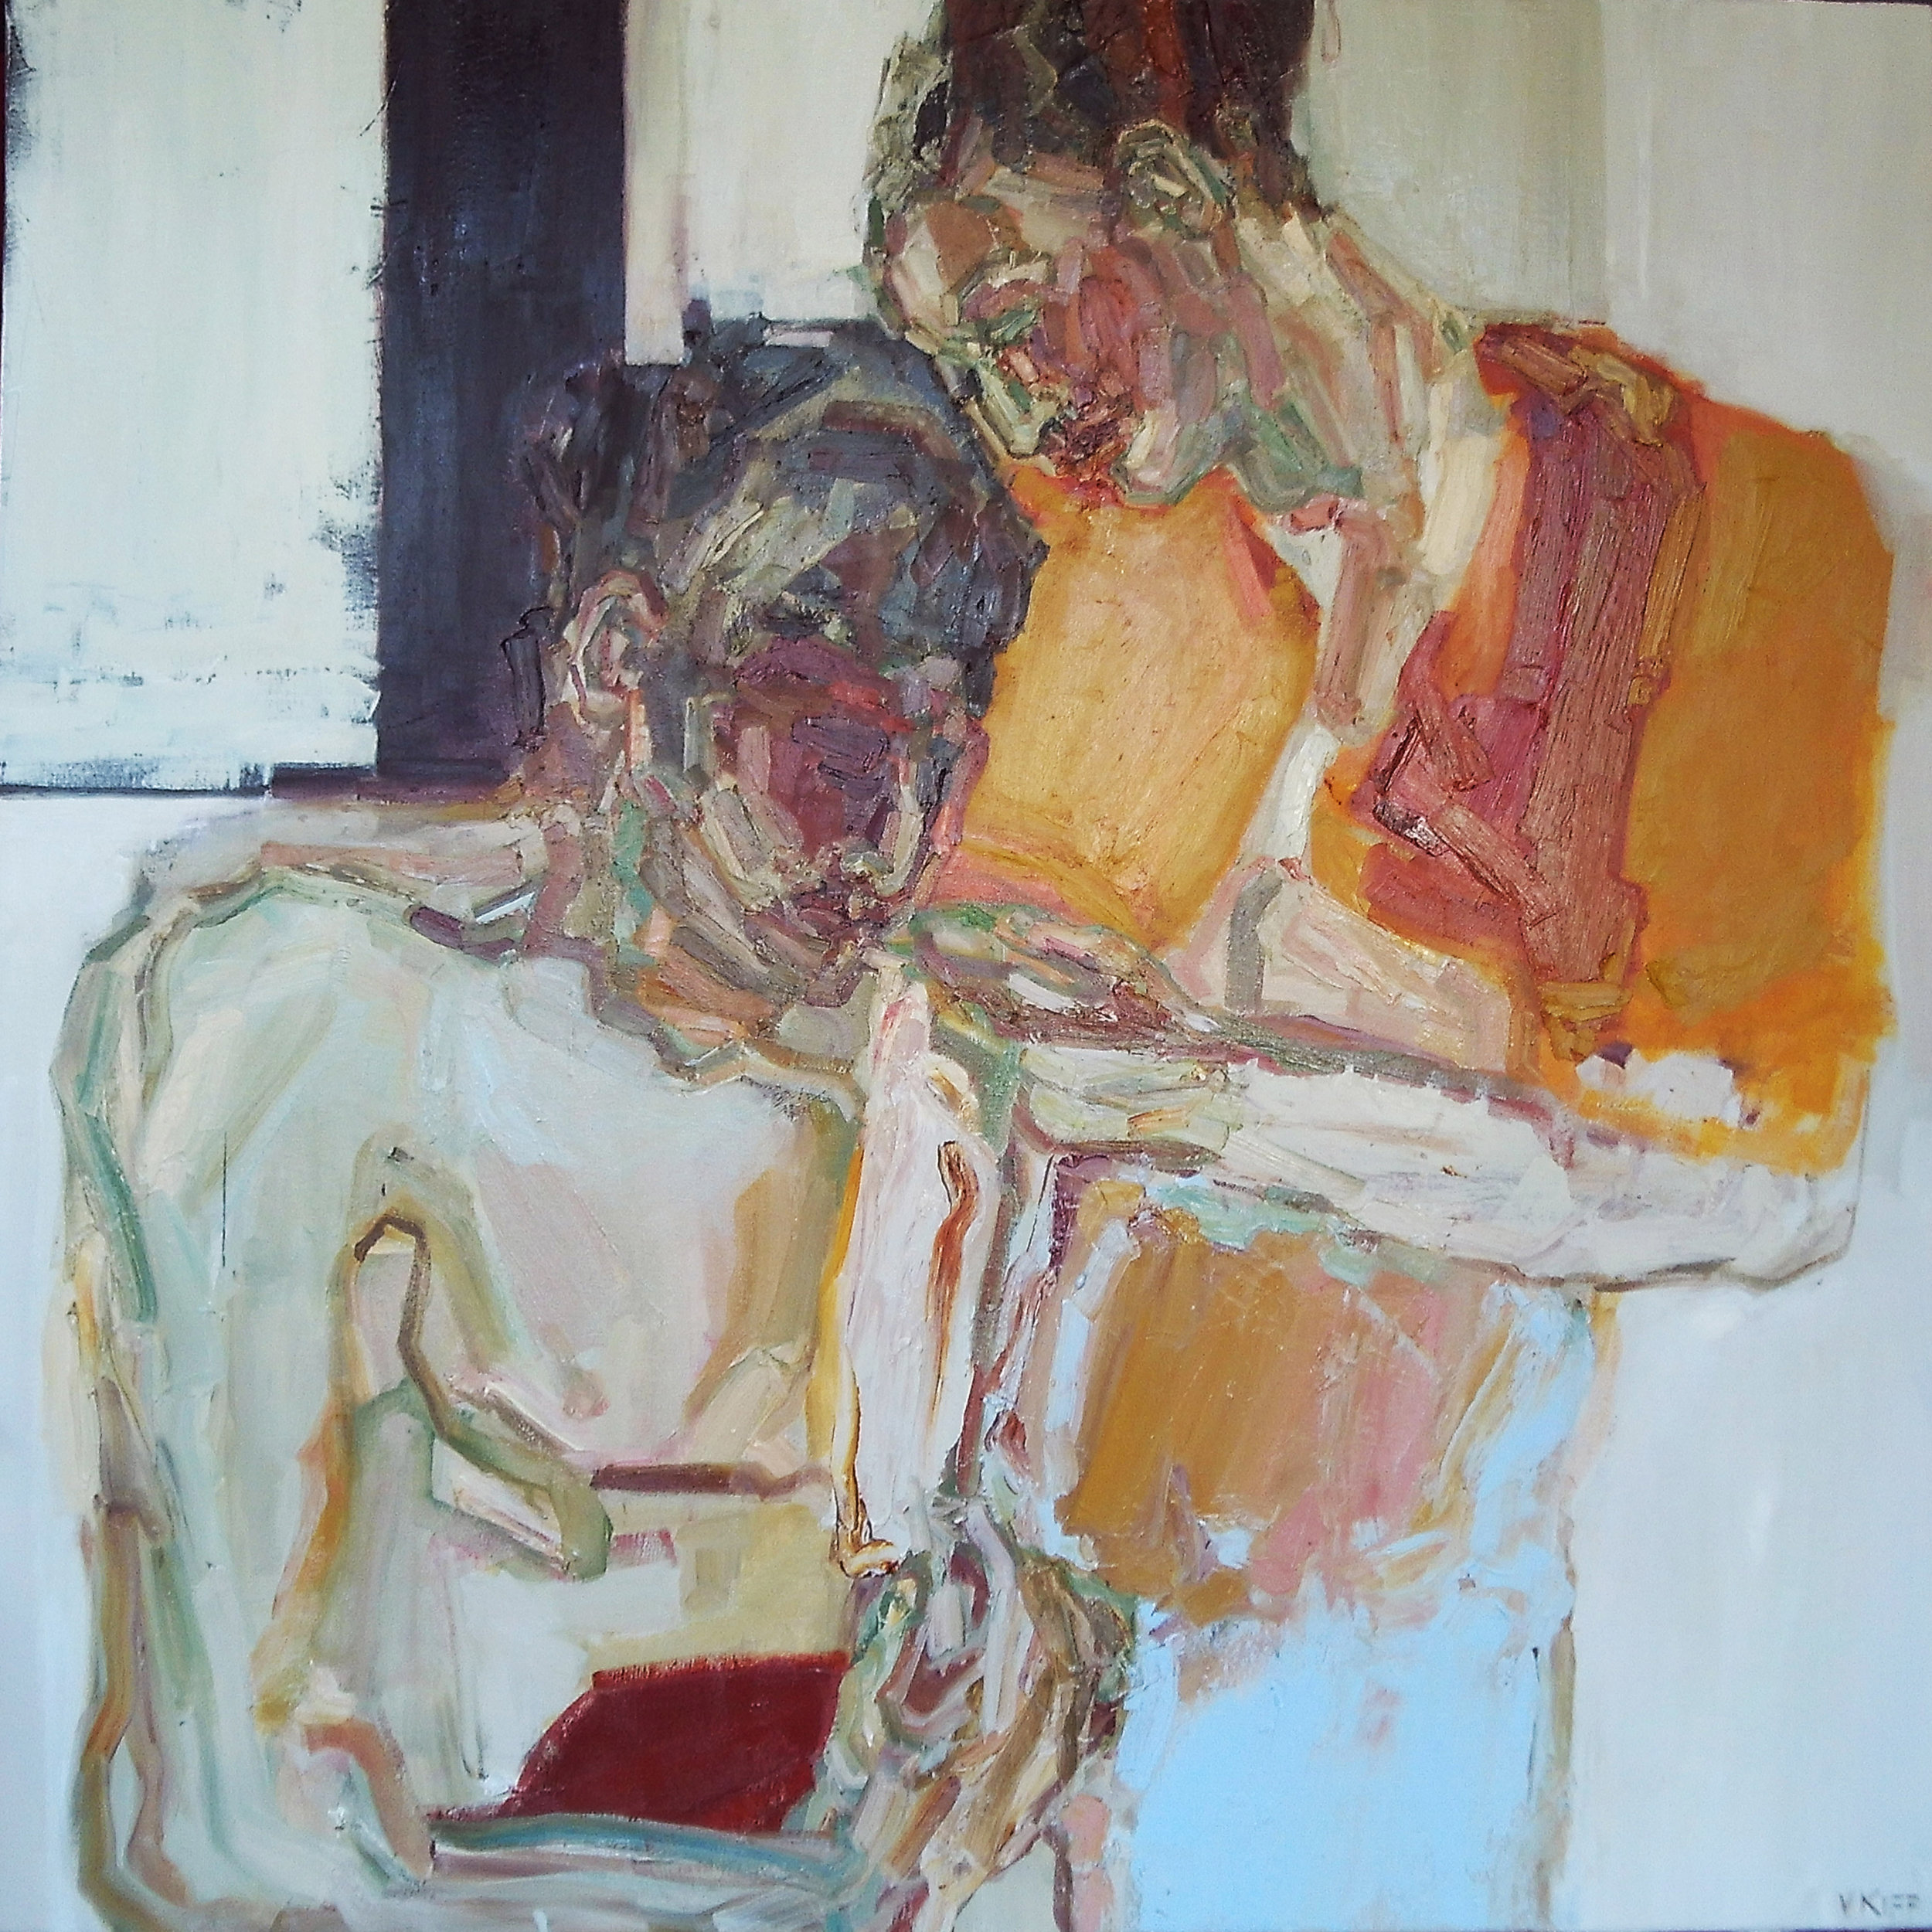 Artist: Victoria Kiff  Title: Internal Monologue  Size: 100 x 100cm  Medium: oil on canvas  SOLD